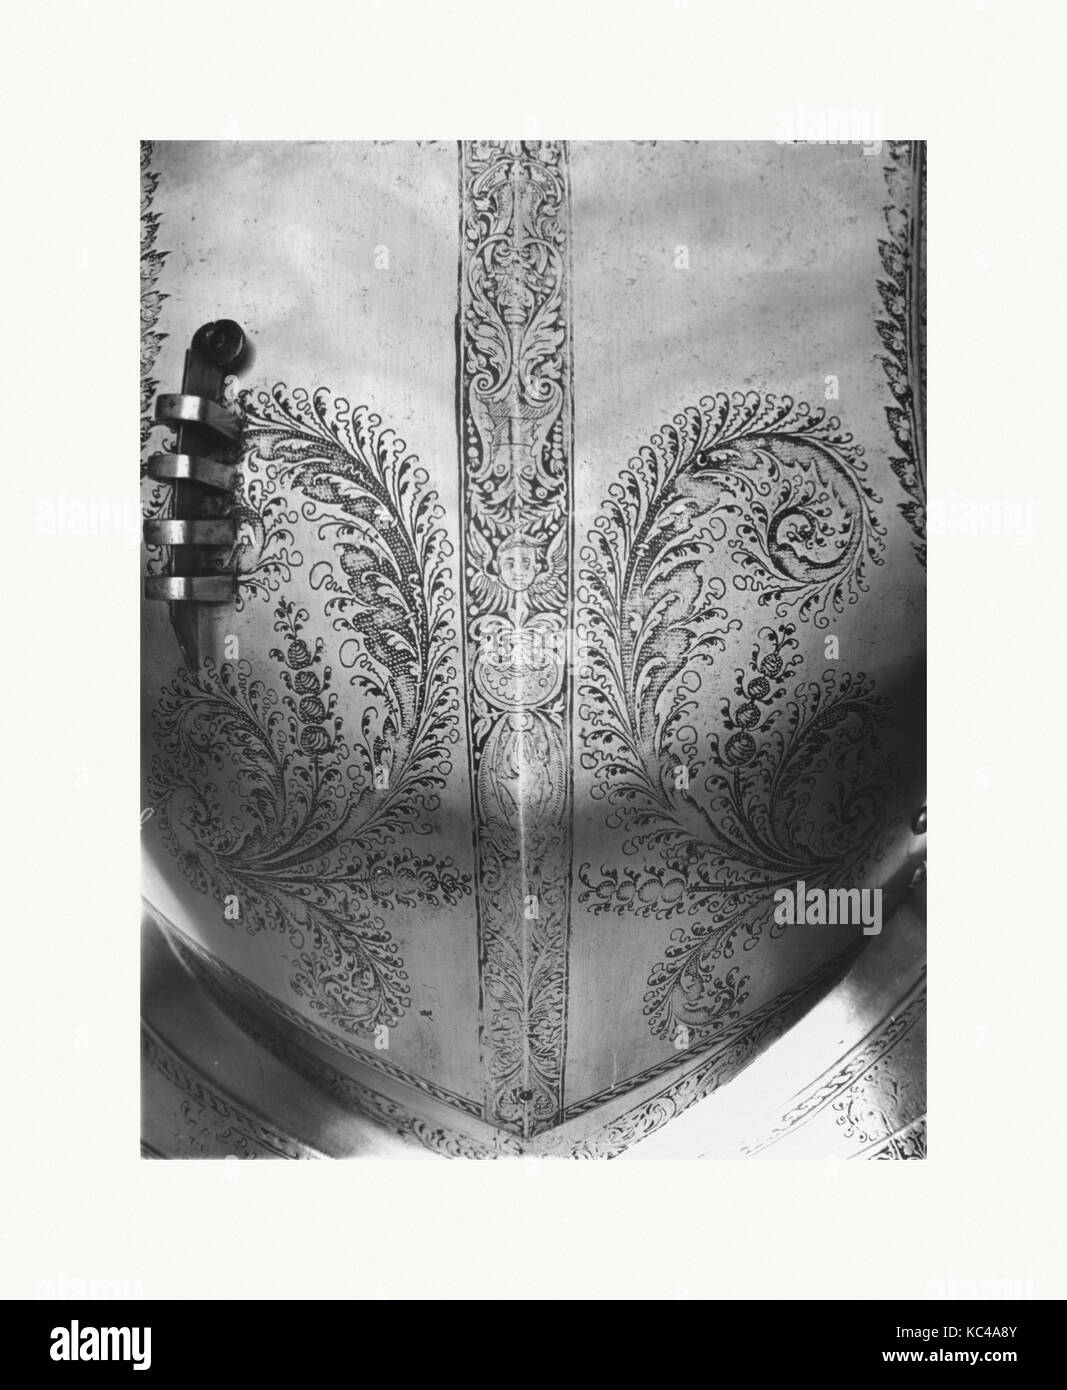 Breastplate, dated 1540, German, Steel, H. 17 in. (43.2 cm); W. 15 7/8 in. (40.3 cm); Wt. 7 lb. 12 oz. (3515 g), - Stock Image